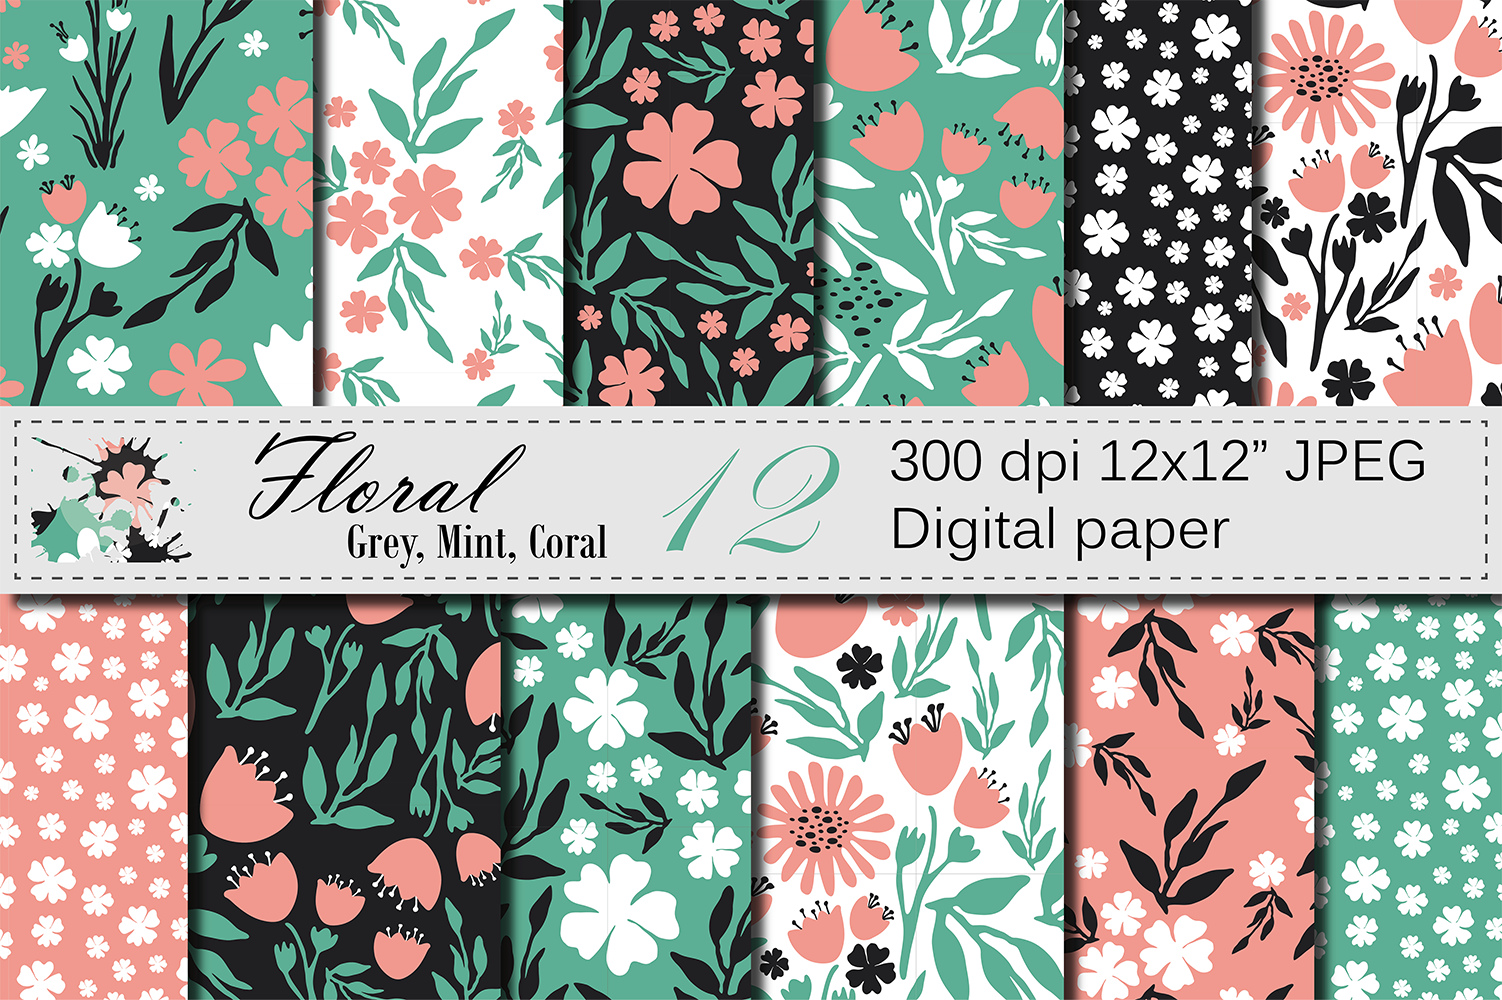 Seamless Floral Digital Paper, Hand Drawn Flowers - Gray Mint Coral example image 1